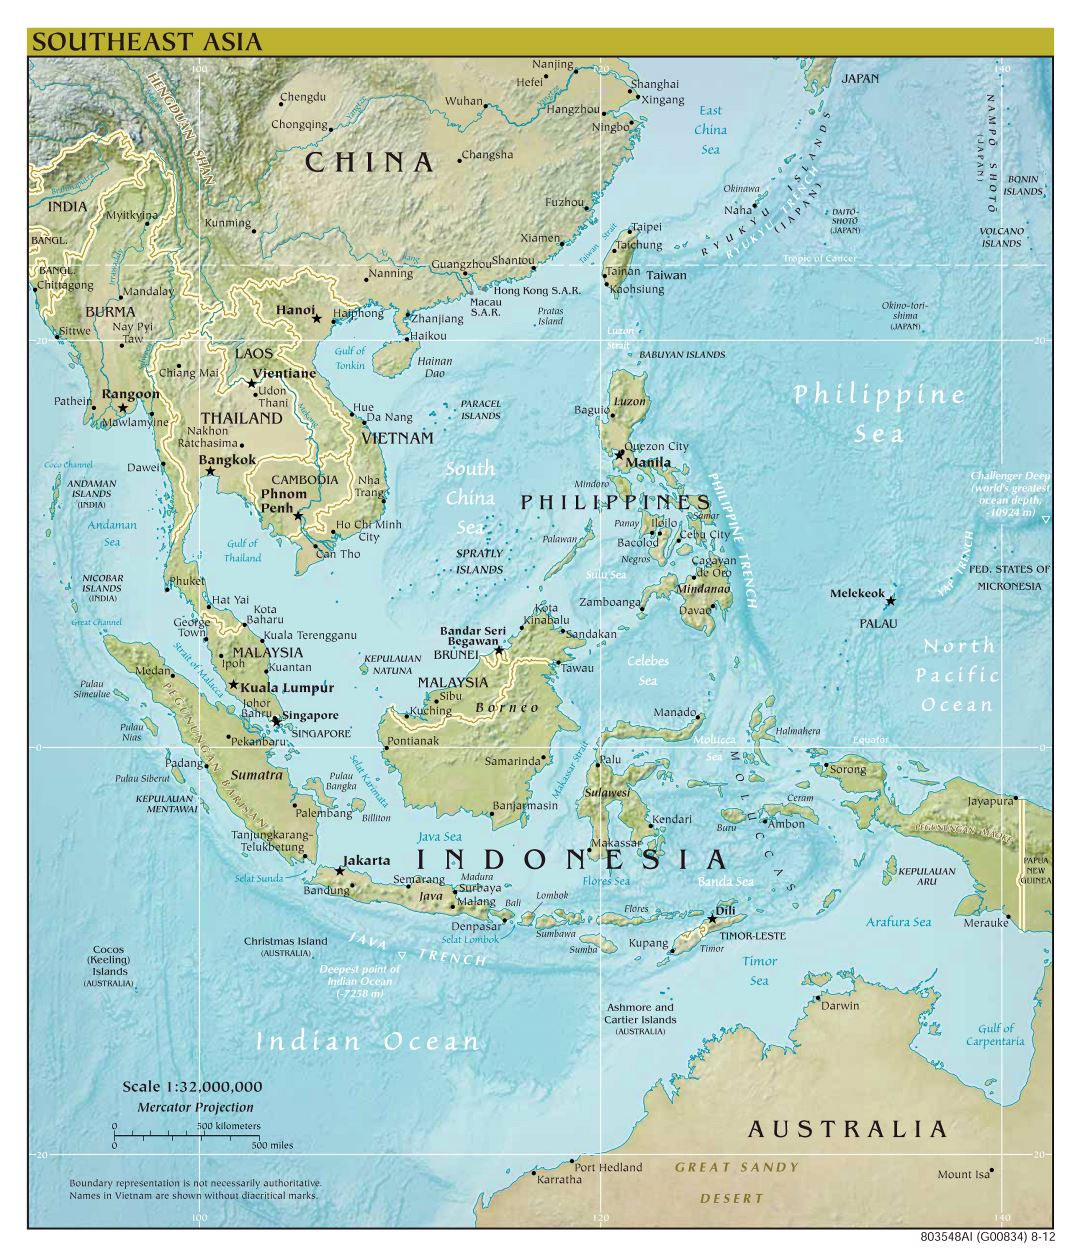 Large scale political map of Southeast Asia with relief - 2012